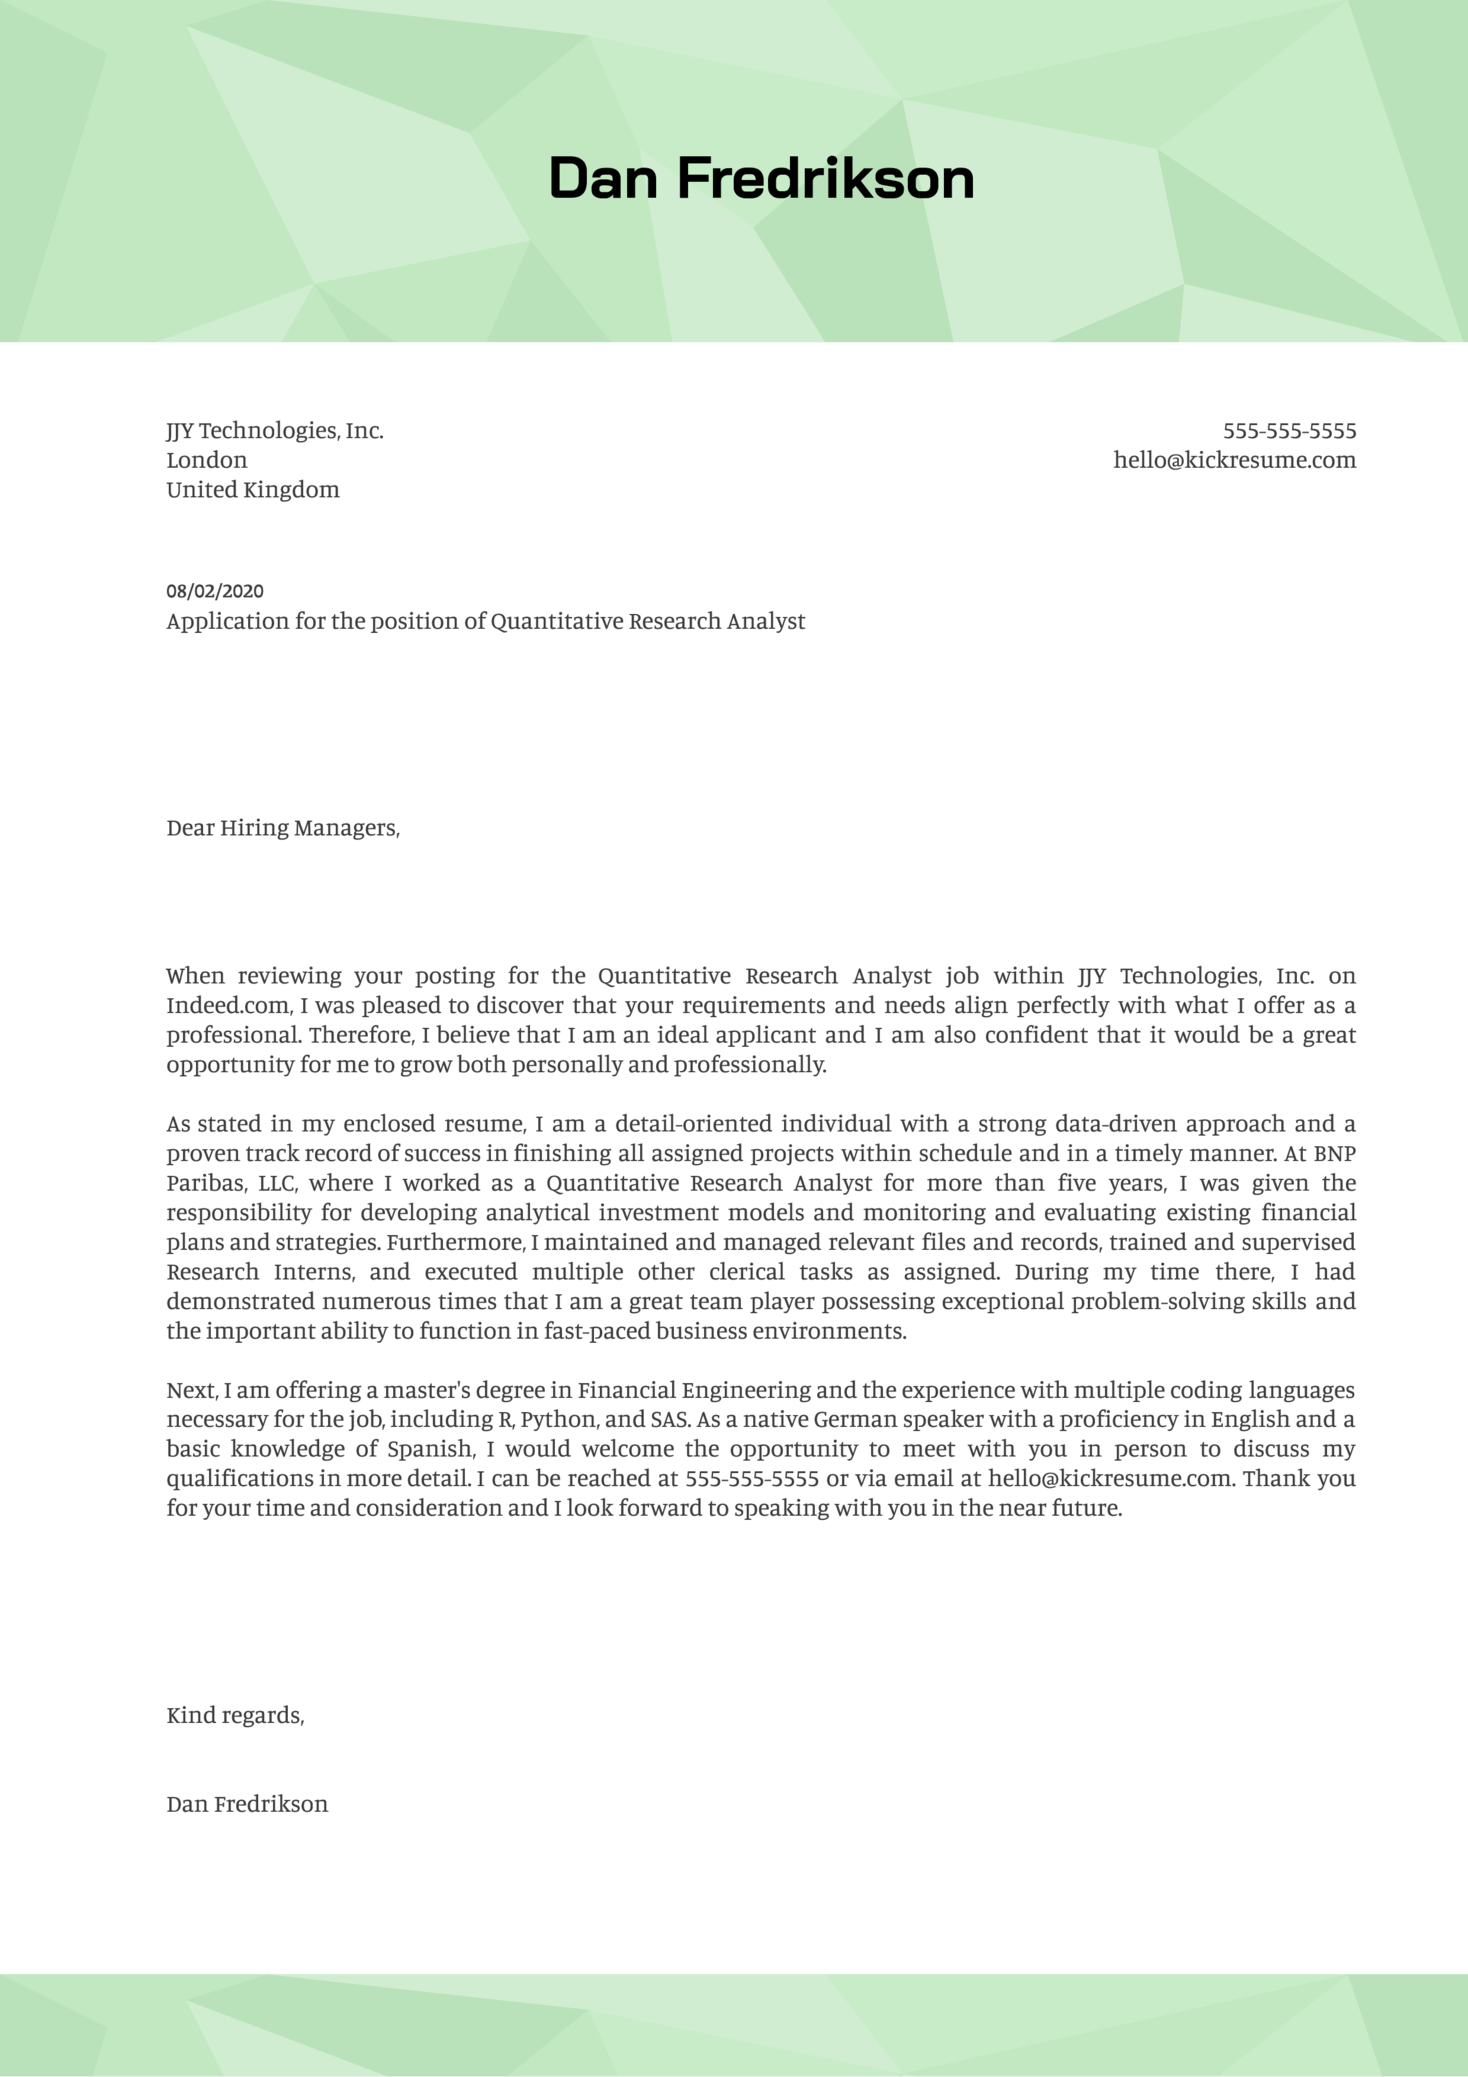 Quantitative Research Analyst Cover Letter Sample